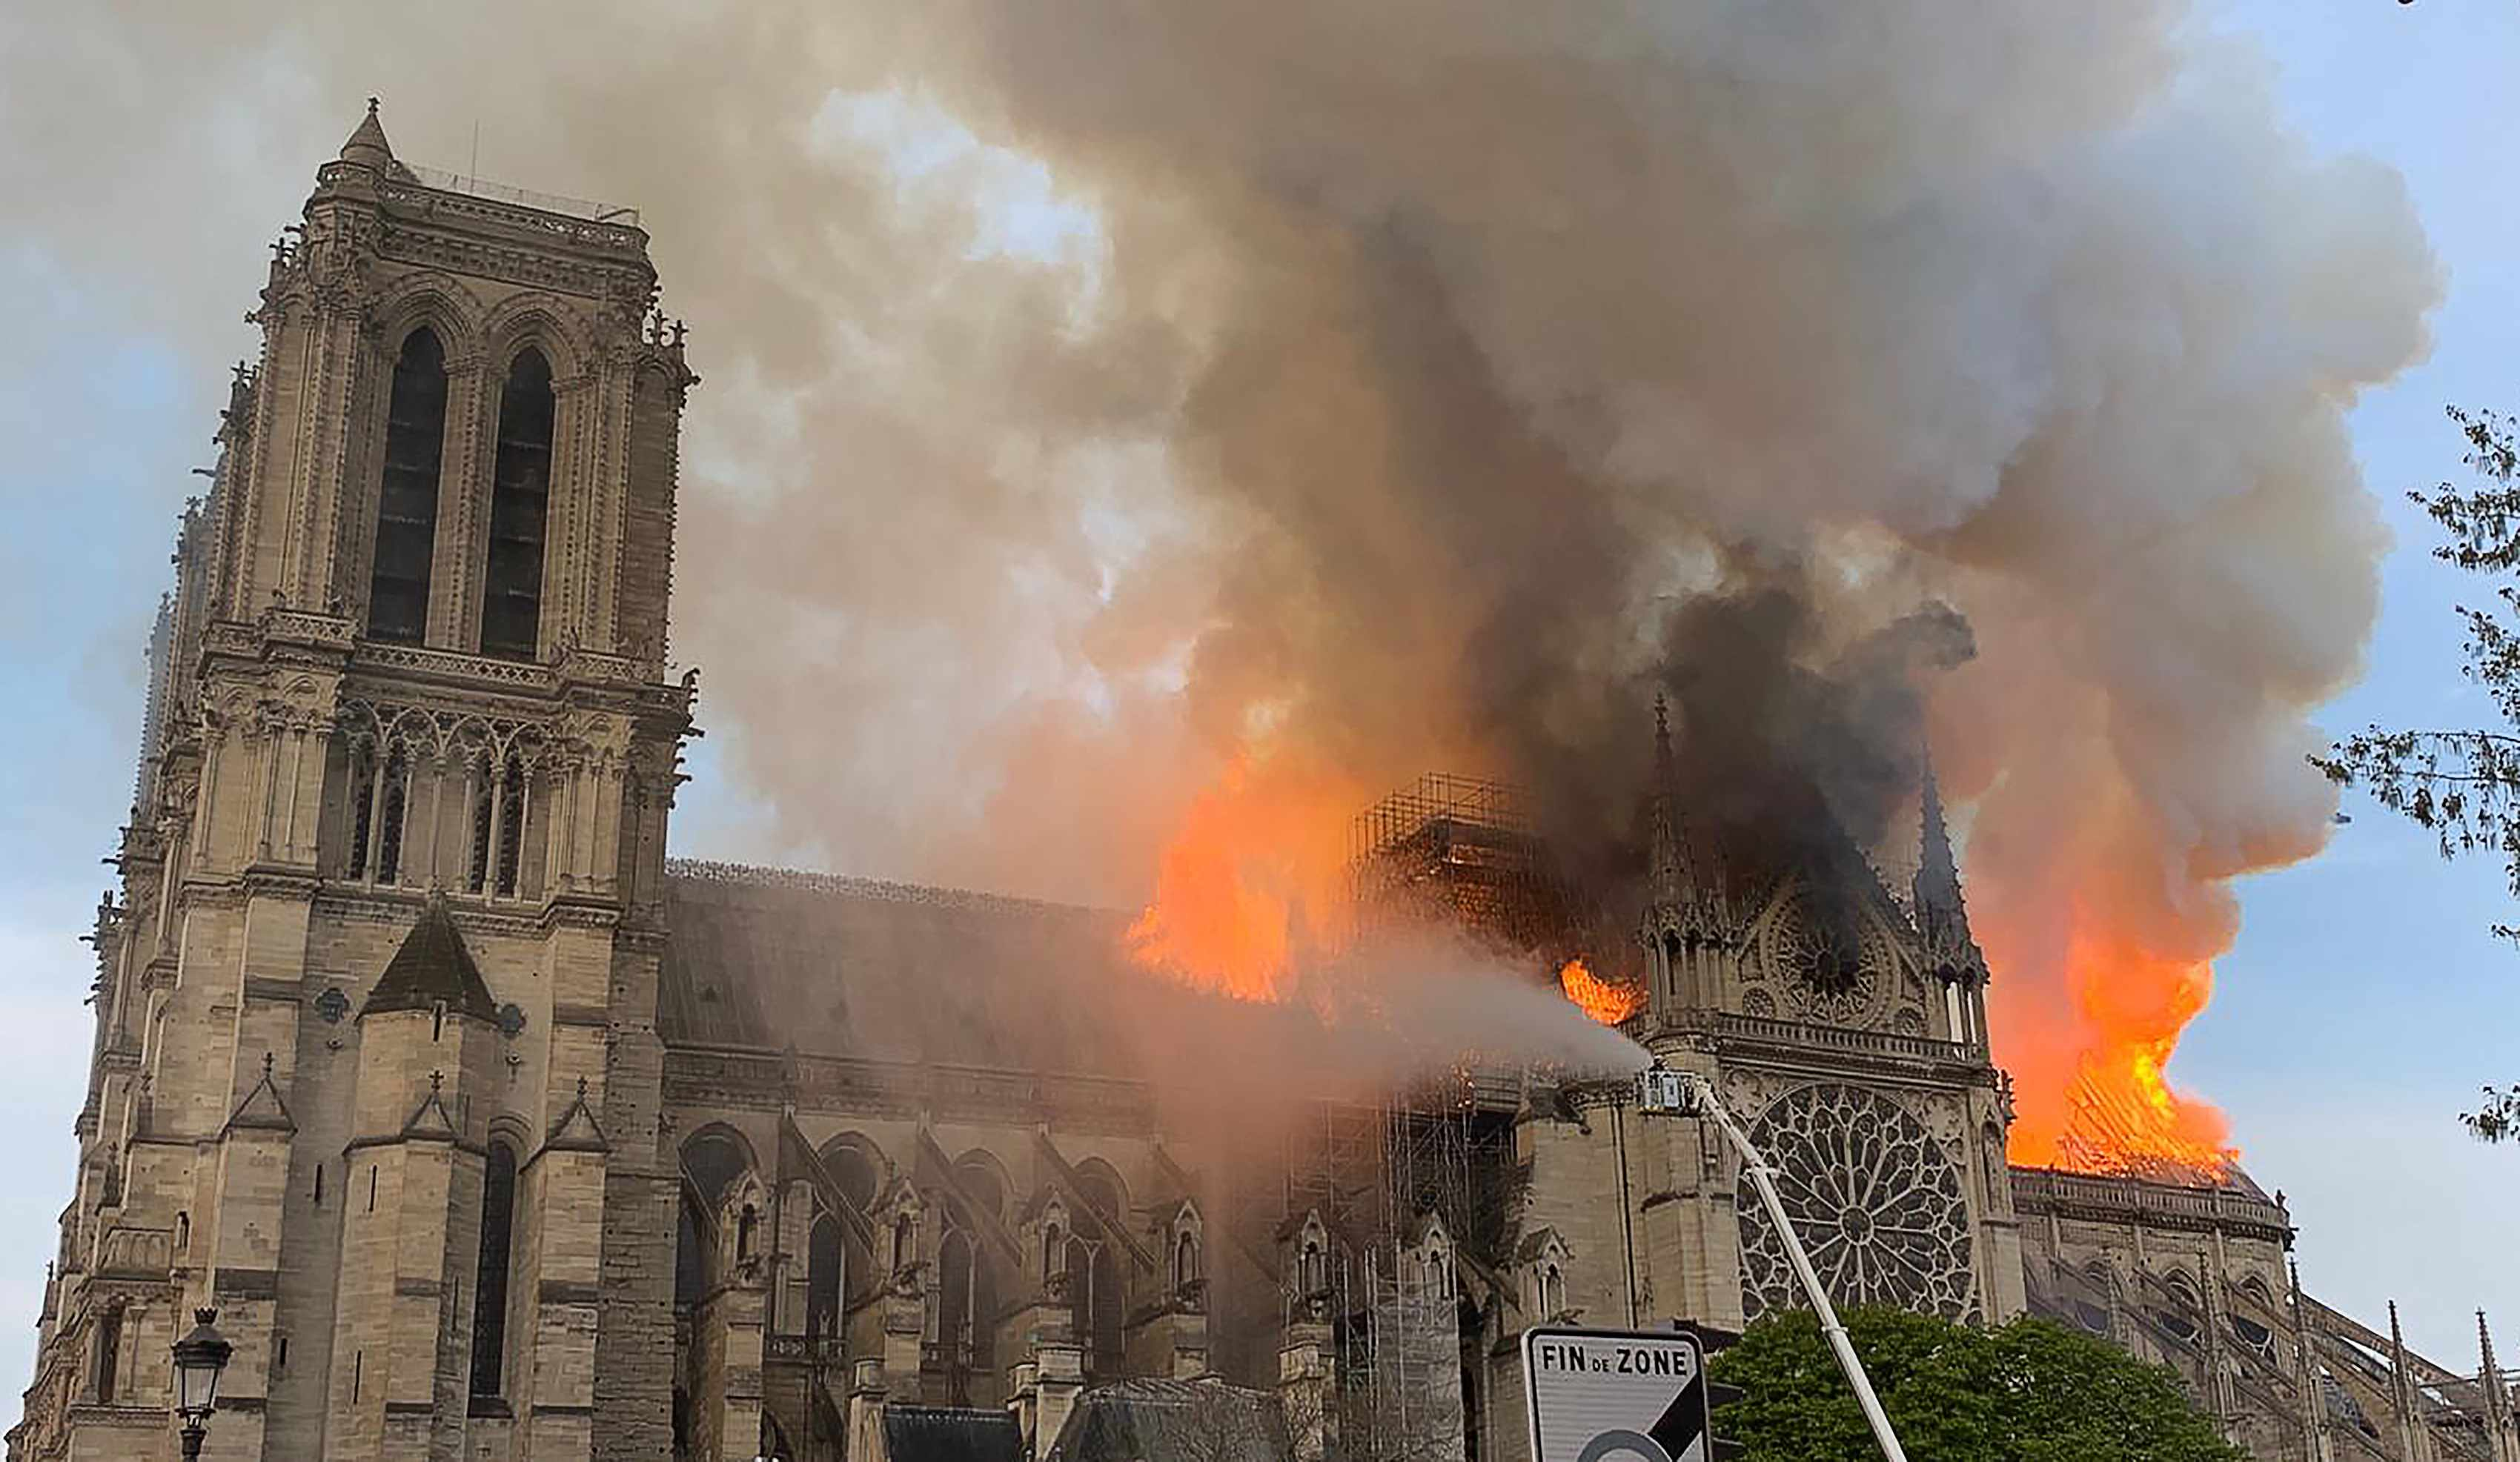 "Flames and smoke are seen billowing from the roof at Notre-Dame cathedral in Paris, 15 April 2019. Yet despite the devastation, the fire is ""not the worst chapter in its 850-year history"", argues Dr Emily Guerry. (Patrick Anidjar/AFP/Getty Images)"